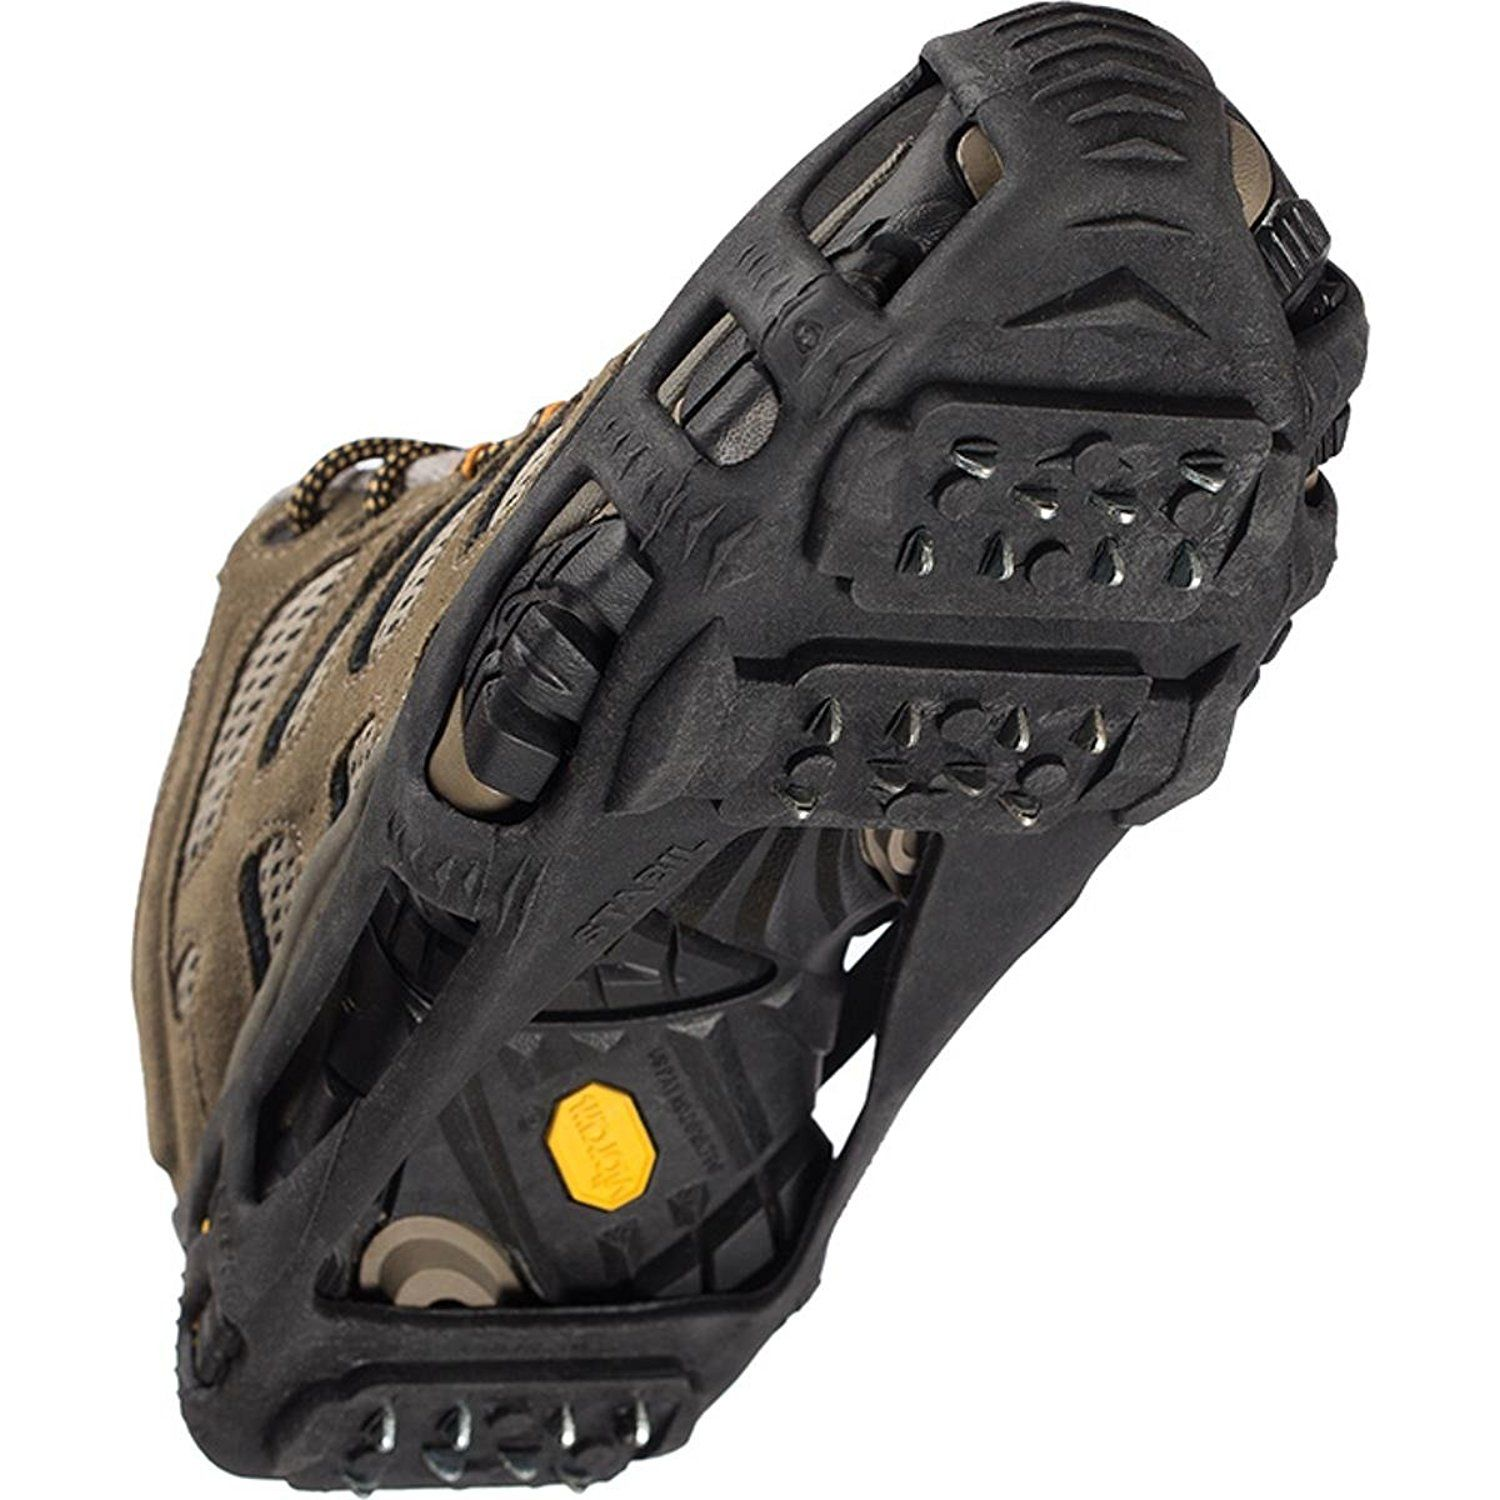 STABILicers Walk Traction Ice Cleat and Tread for Snow